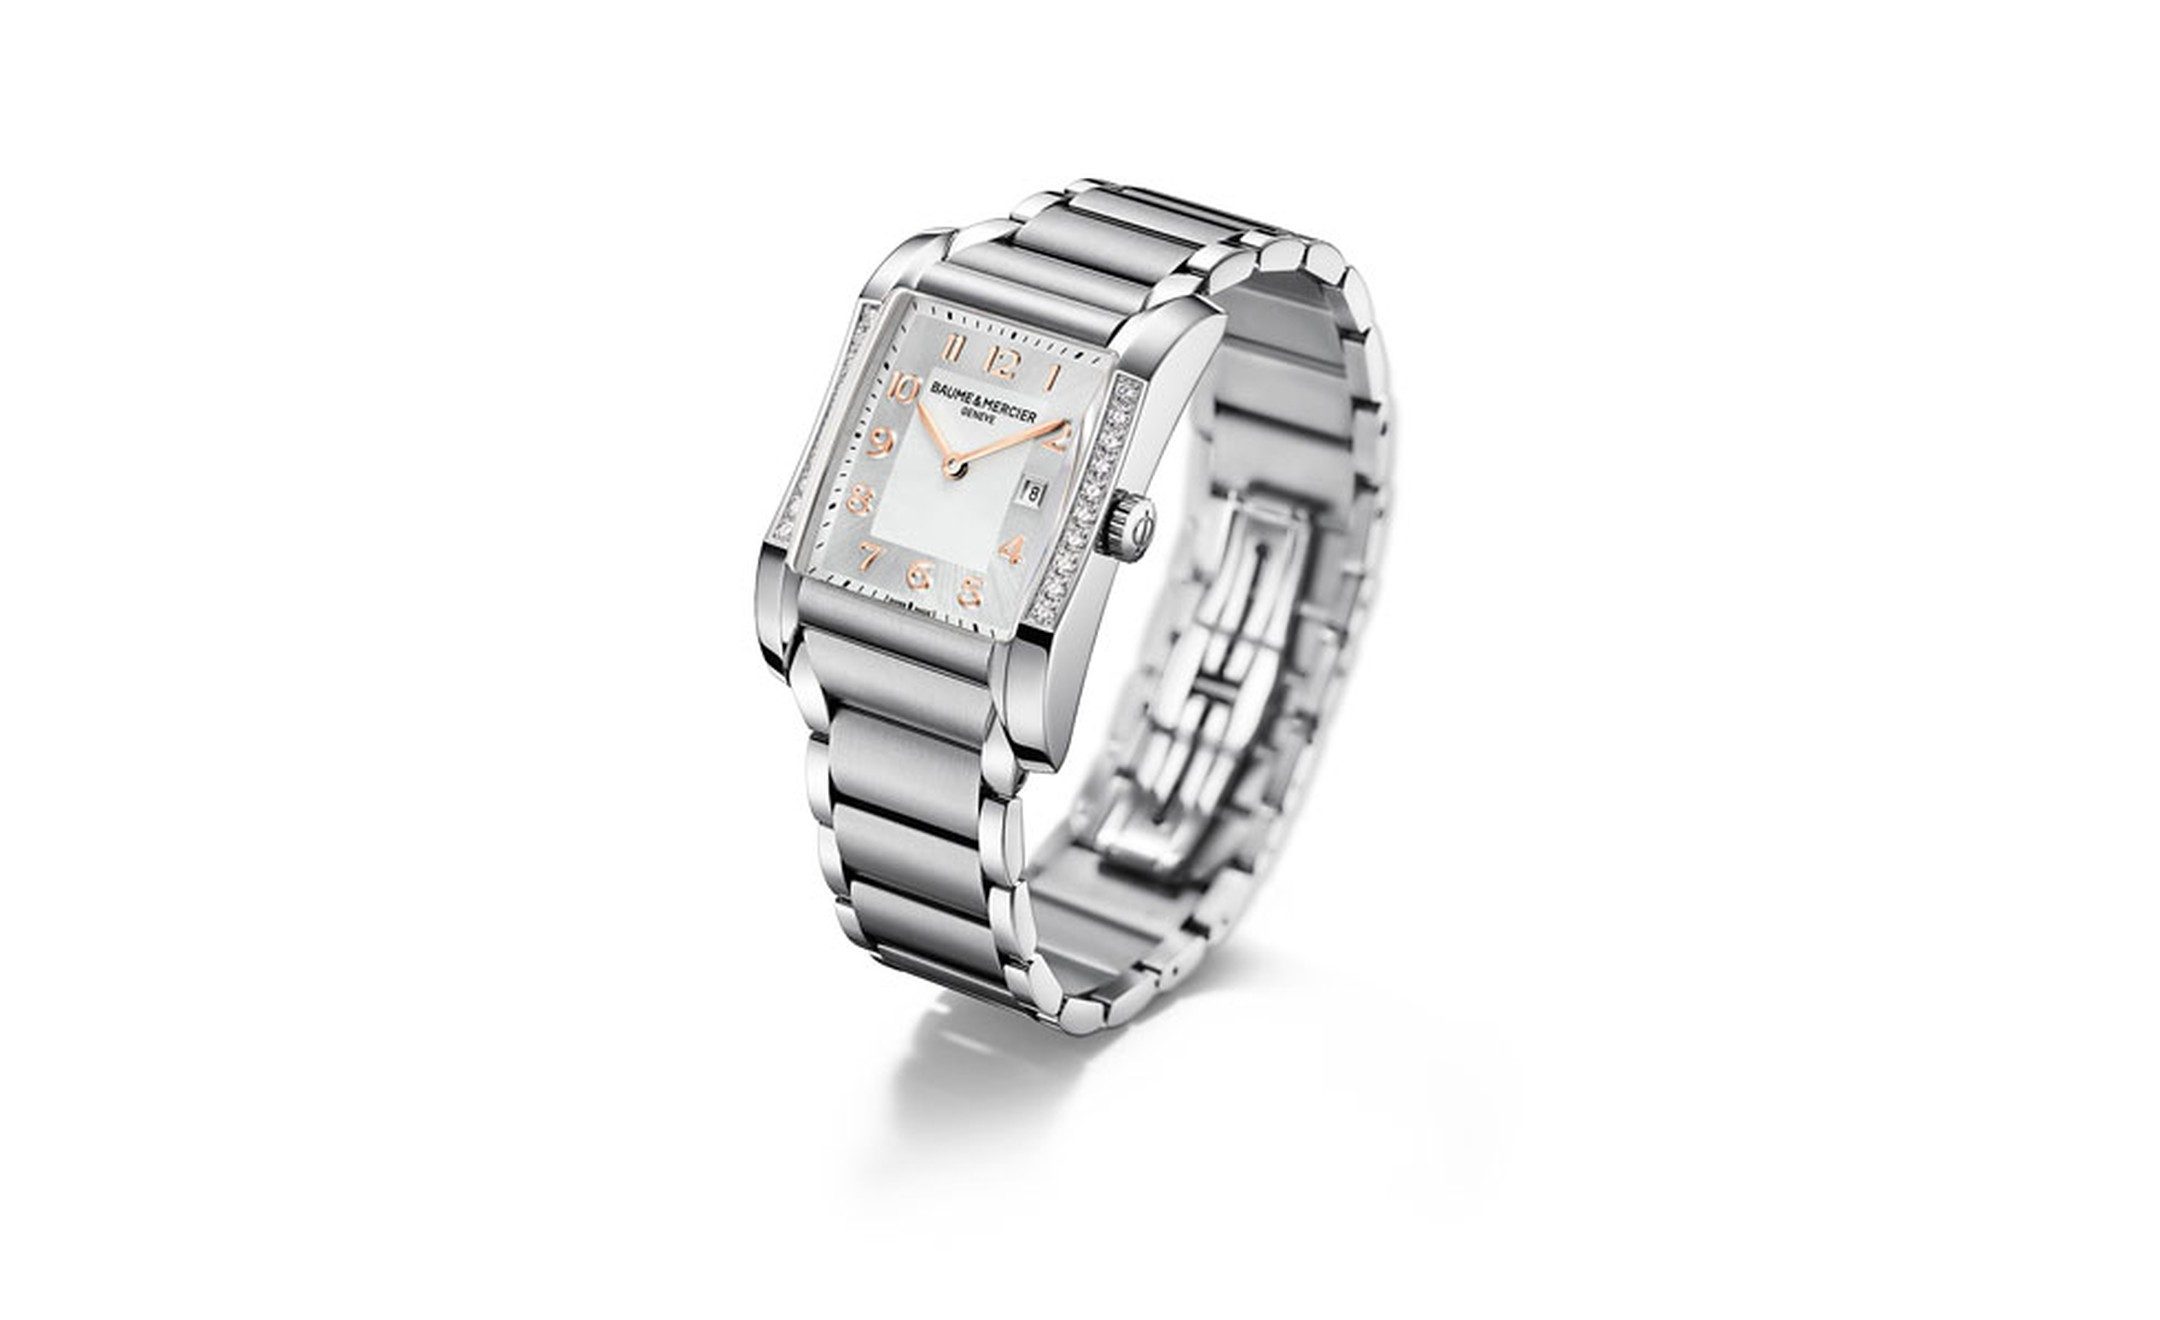 Baume et Mercier Hampton: stainless steel case with quartz movement on stainless steel bracelet. £3,170